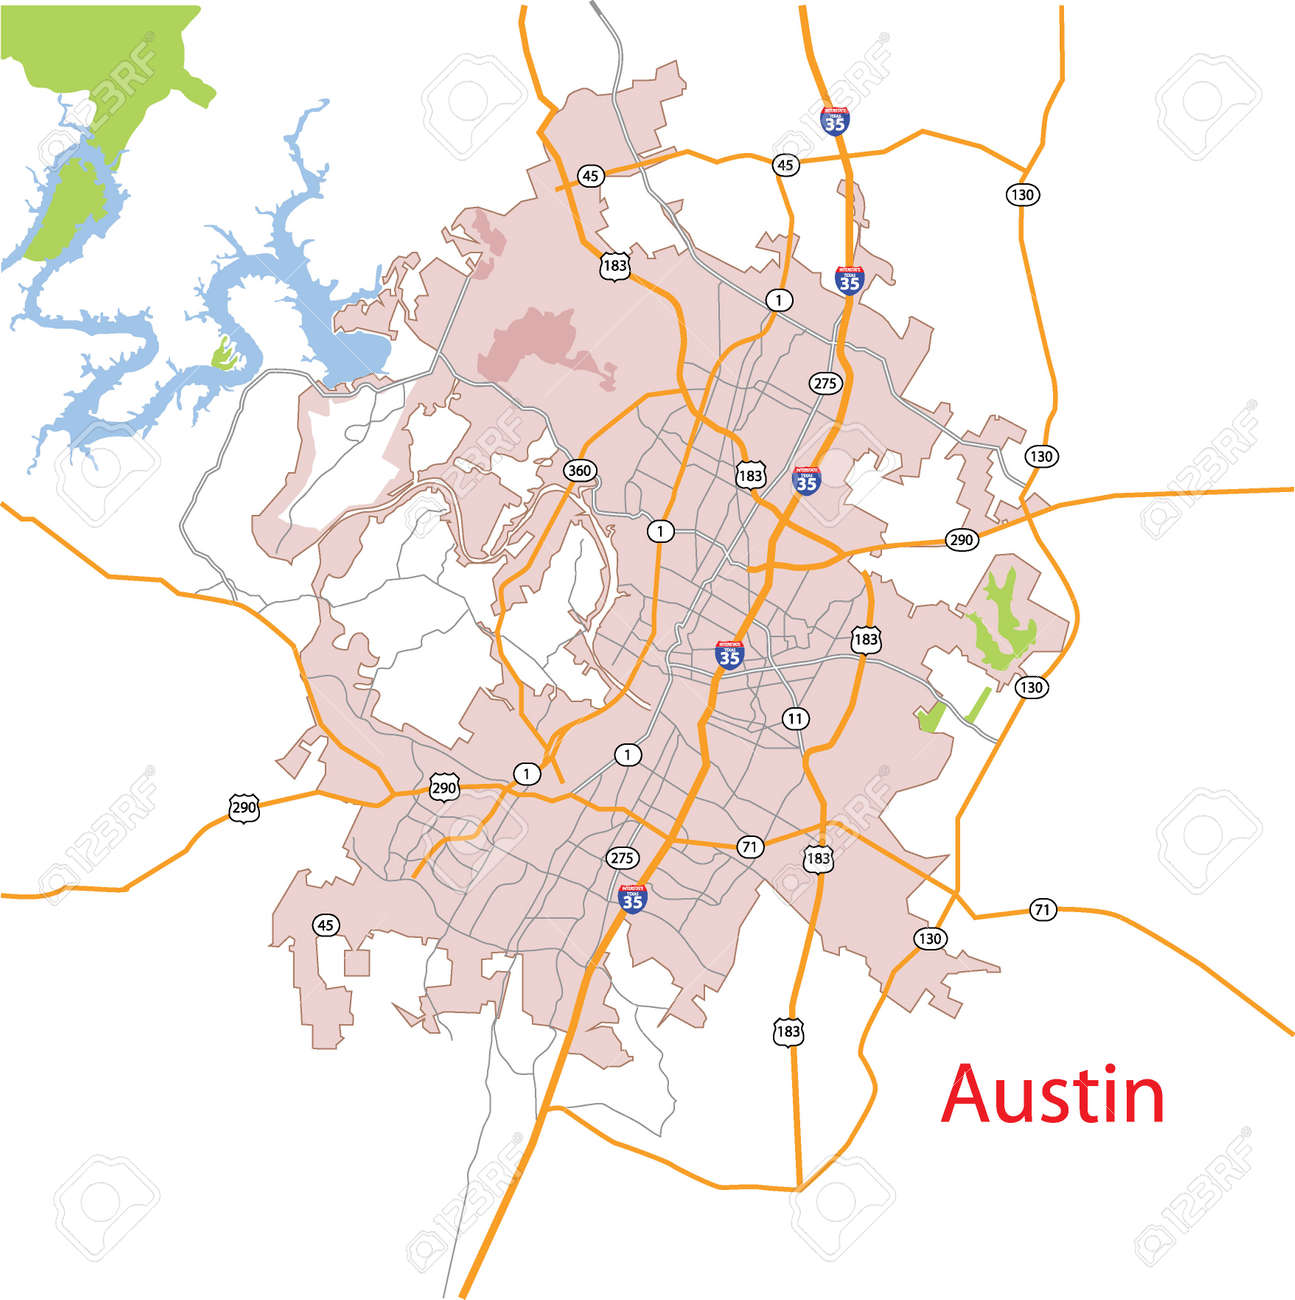 Austin Texas Usa Detailed Vector Map Royalty Free Cliparts